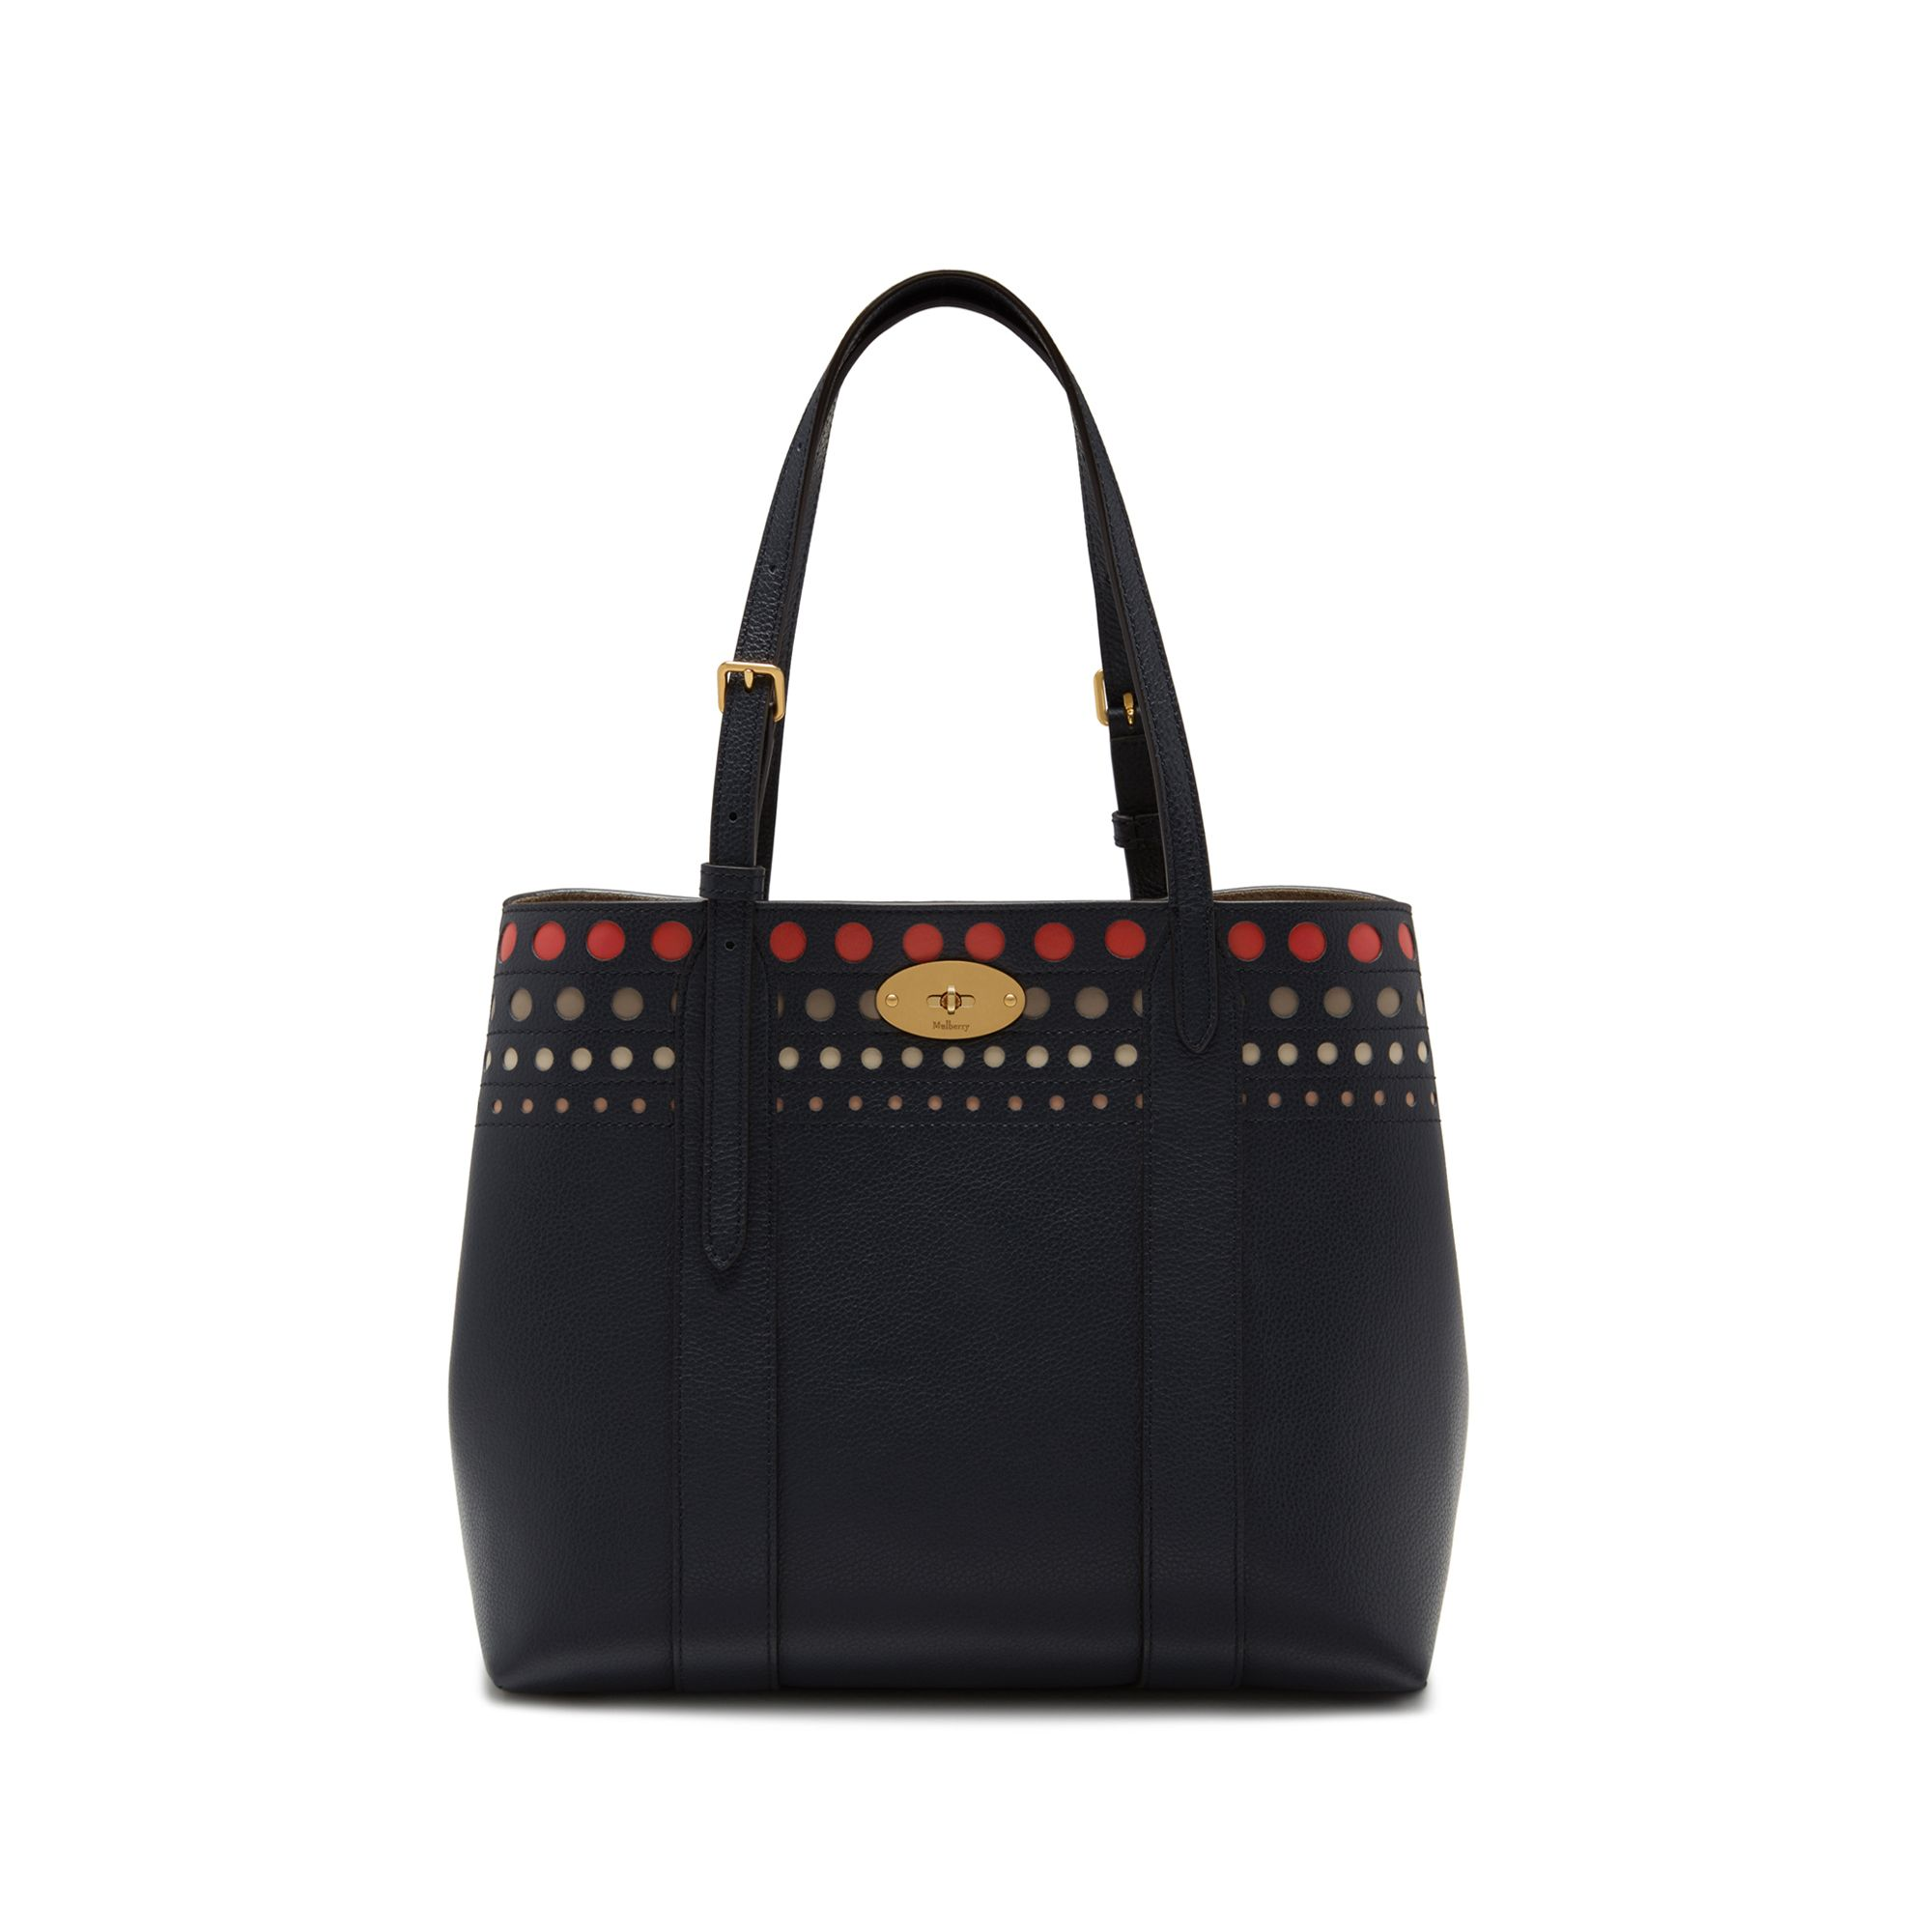 57afbaa3a0a norway mulberry bayswater small grained leather tote 6c3b0 2bf82; order  shoulder bags womens bags women mulberry ea6d4 31562